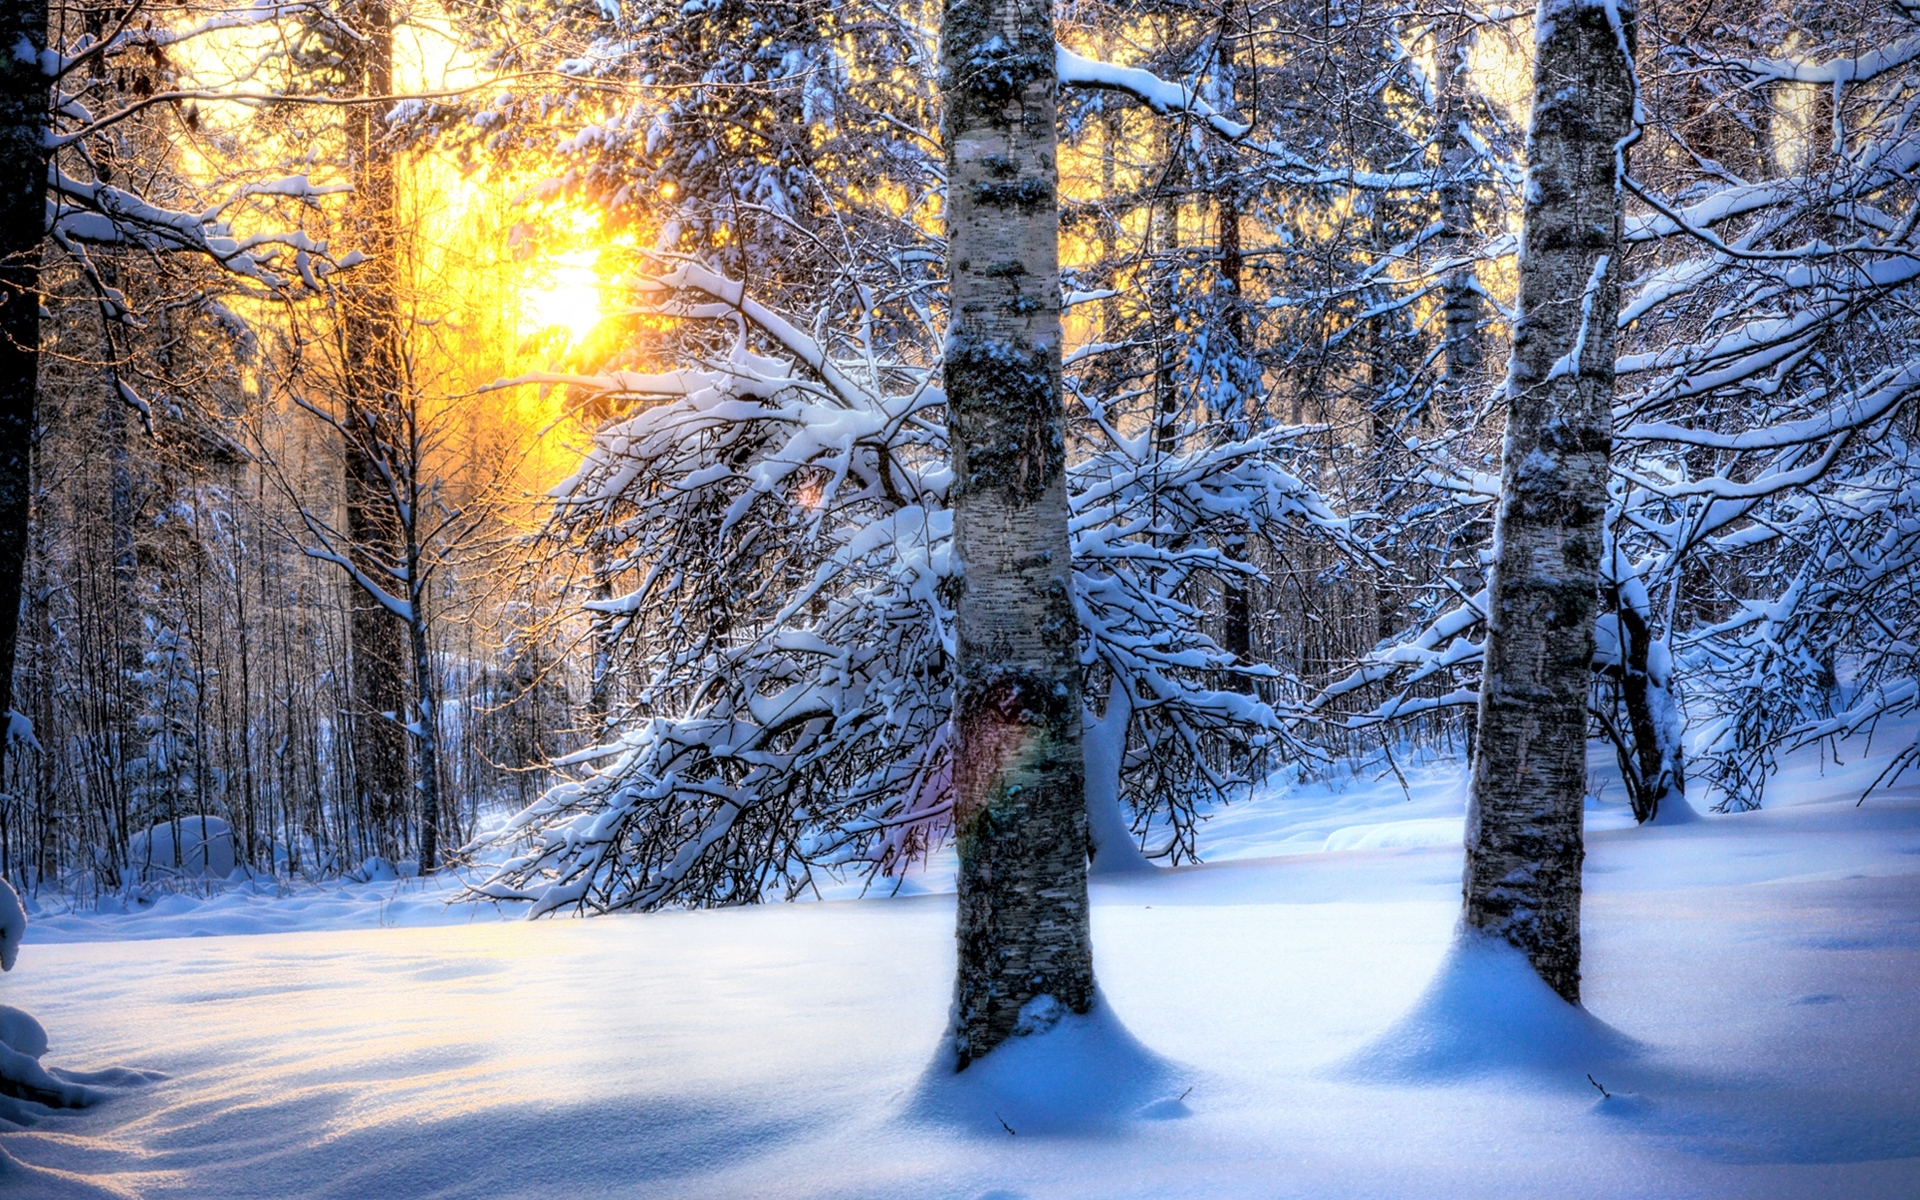 44624 download wallpaper Landscape, Winter, Nature, Trees, Snow screensavers and pictures for free